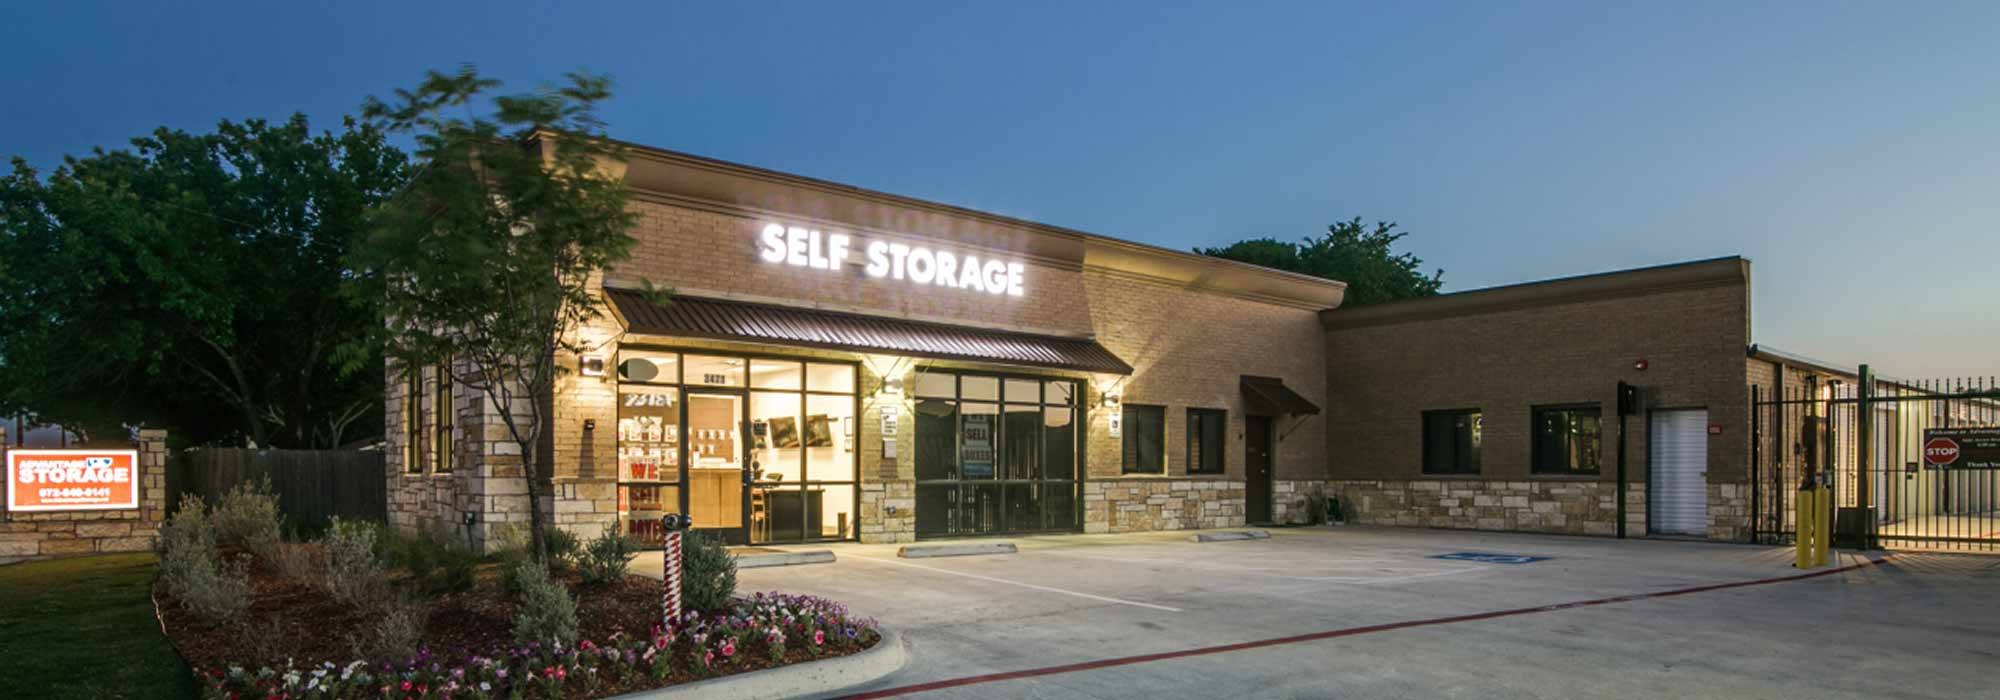 Self storage in Garland TX